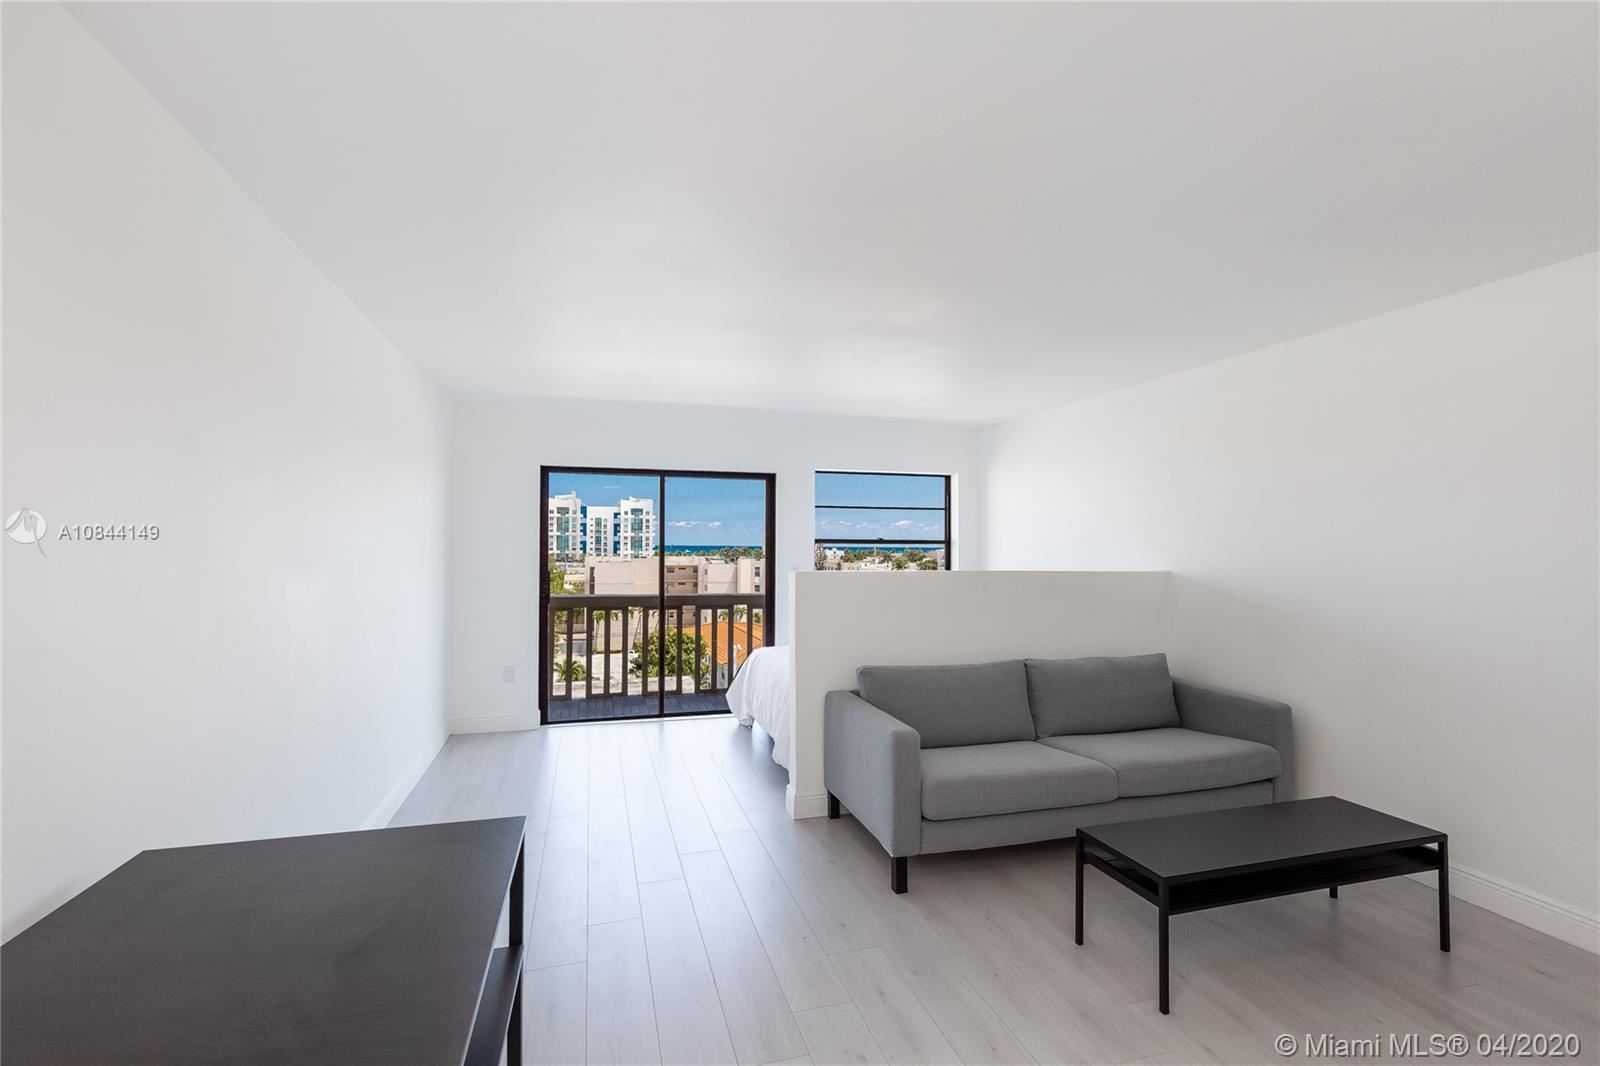 Photo of 7620 Carlyle Ave #705, Miami Beach, FL 33141 (MLS # A10844149)